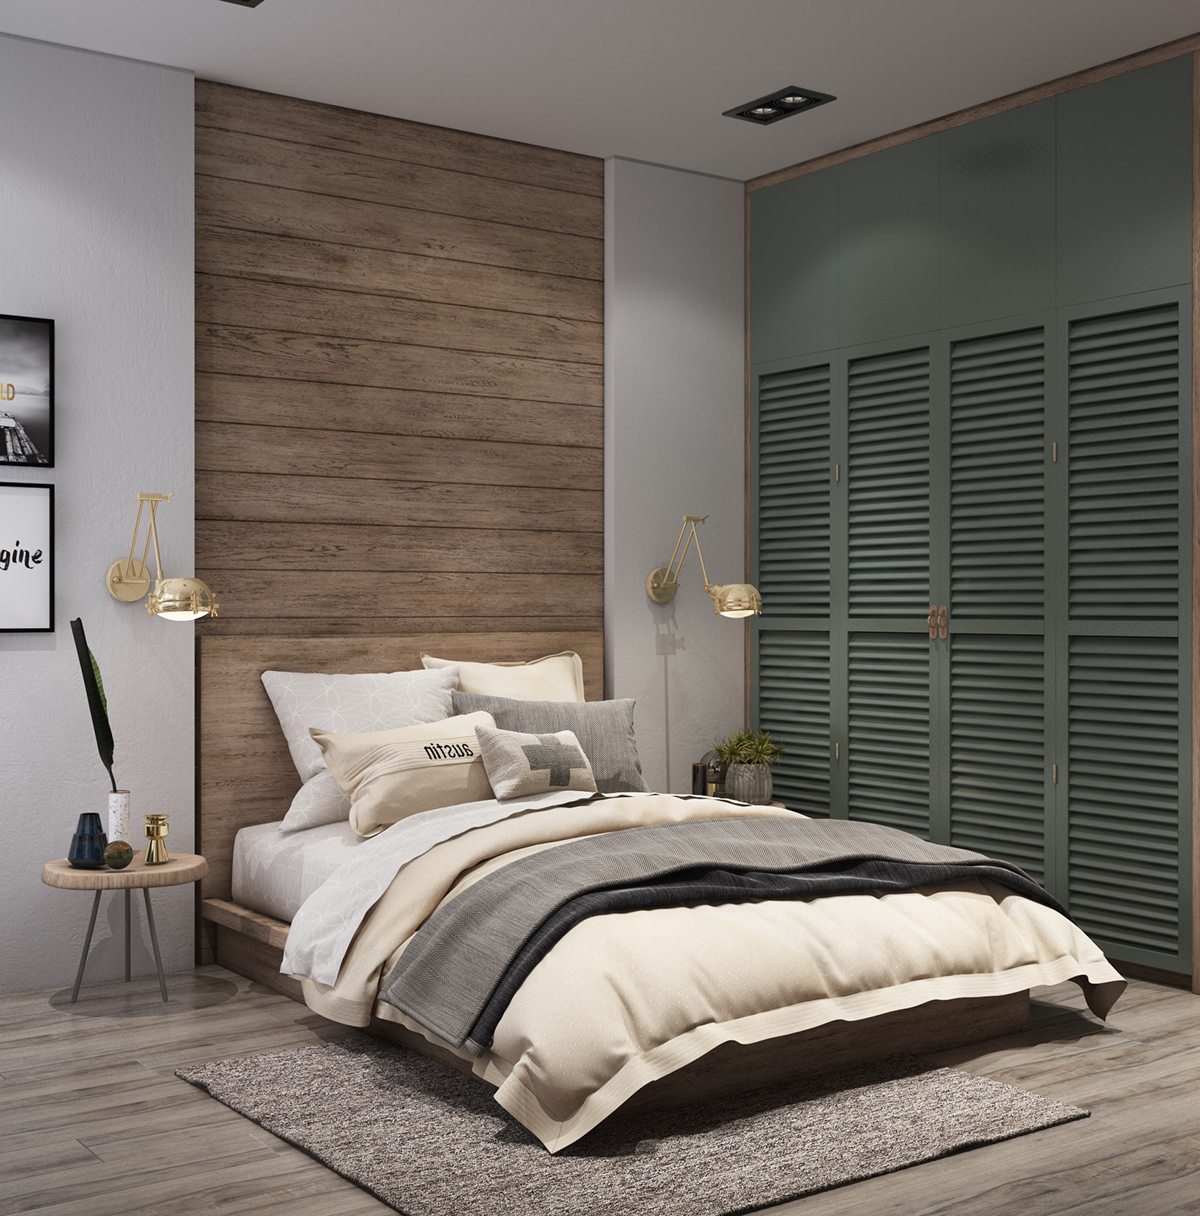 green-and-natural-bedroom